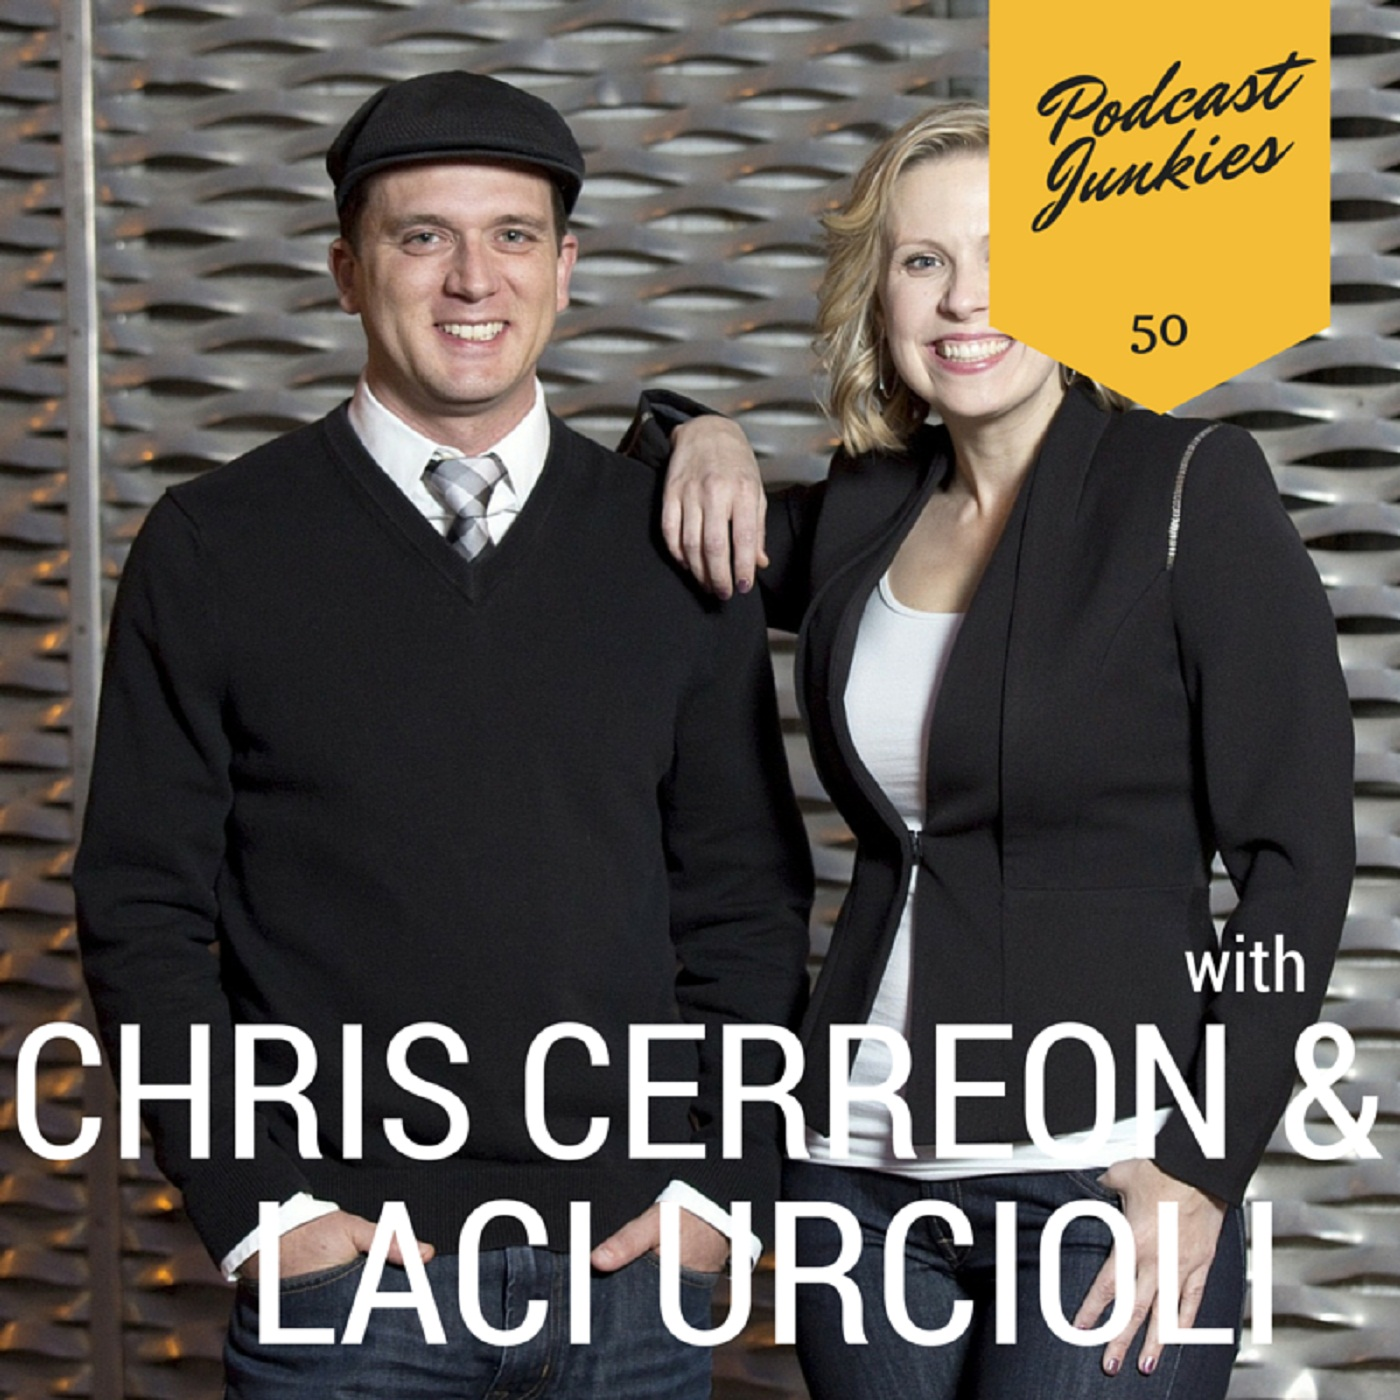 050 Chris Cerrone and Laci Urcioli |The Importance of Staying True To Yourself